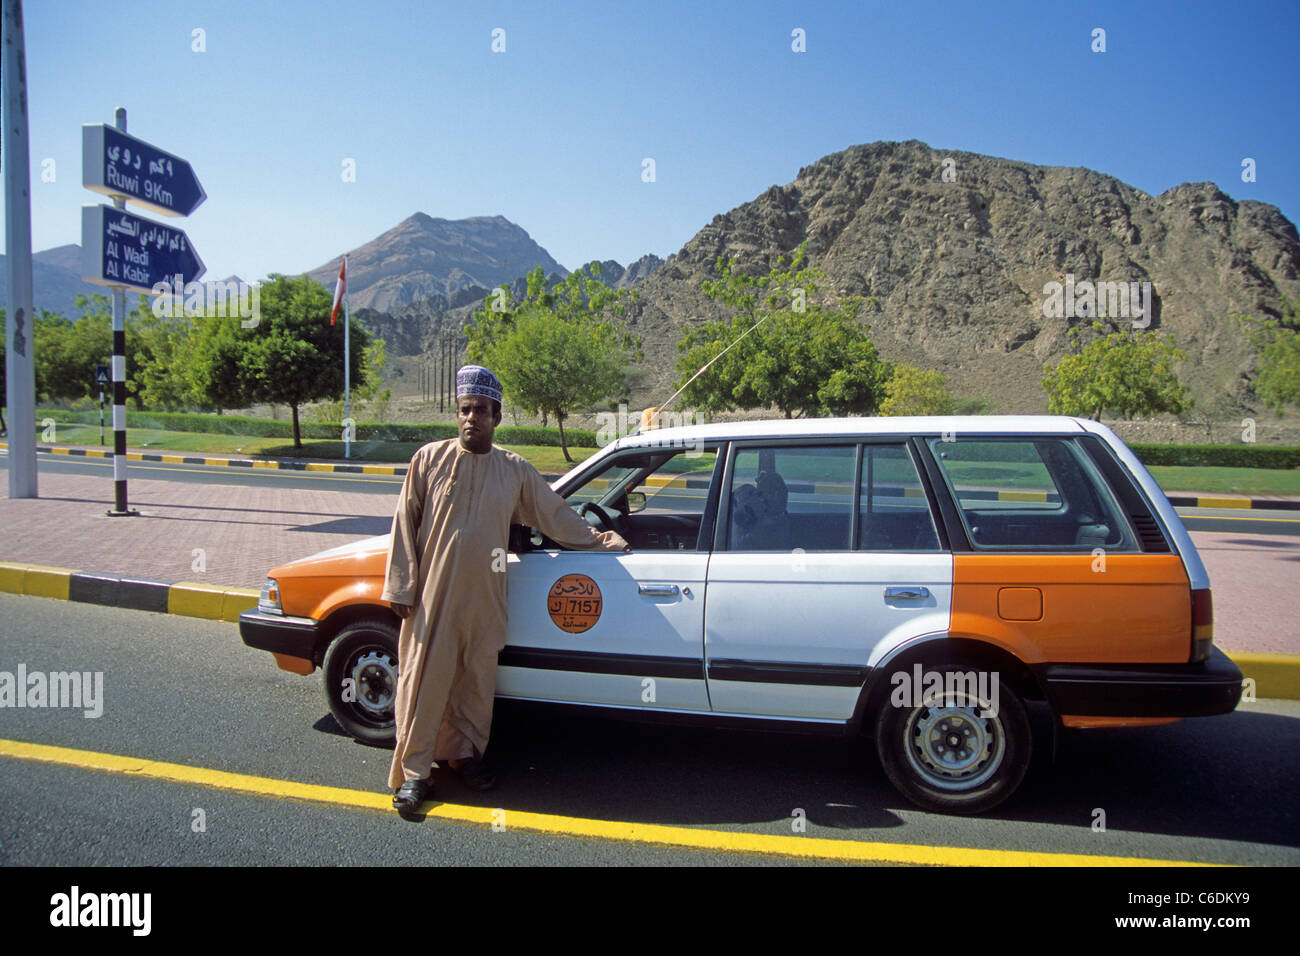 Taxifahrer und Taxi, Muscat, Taxi driver with his taxi, Muscat - Stock Image